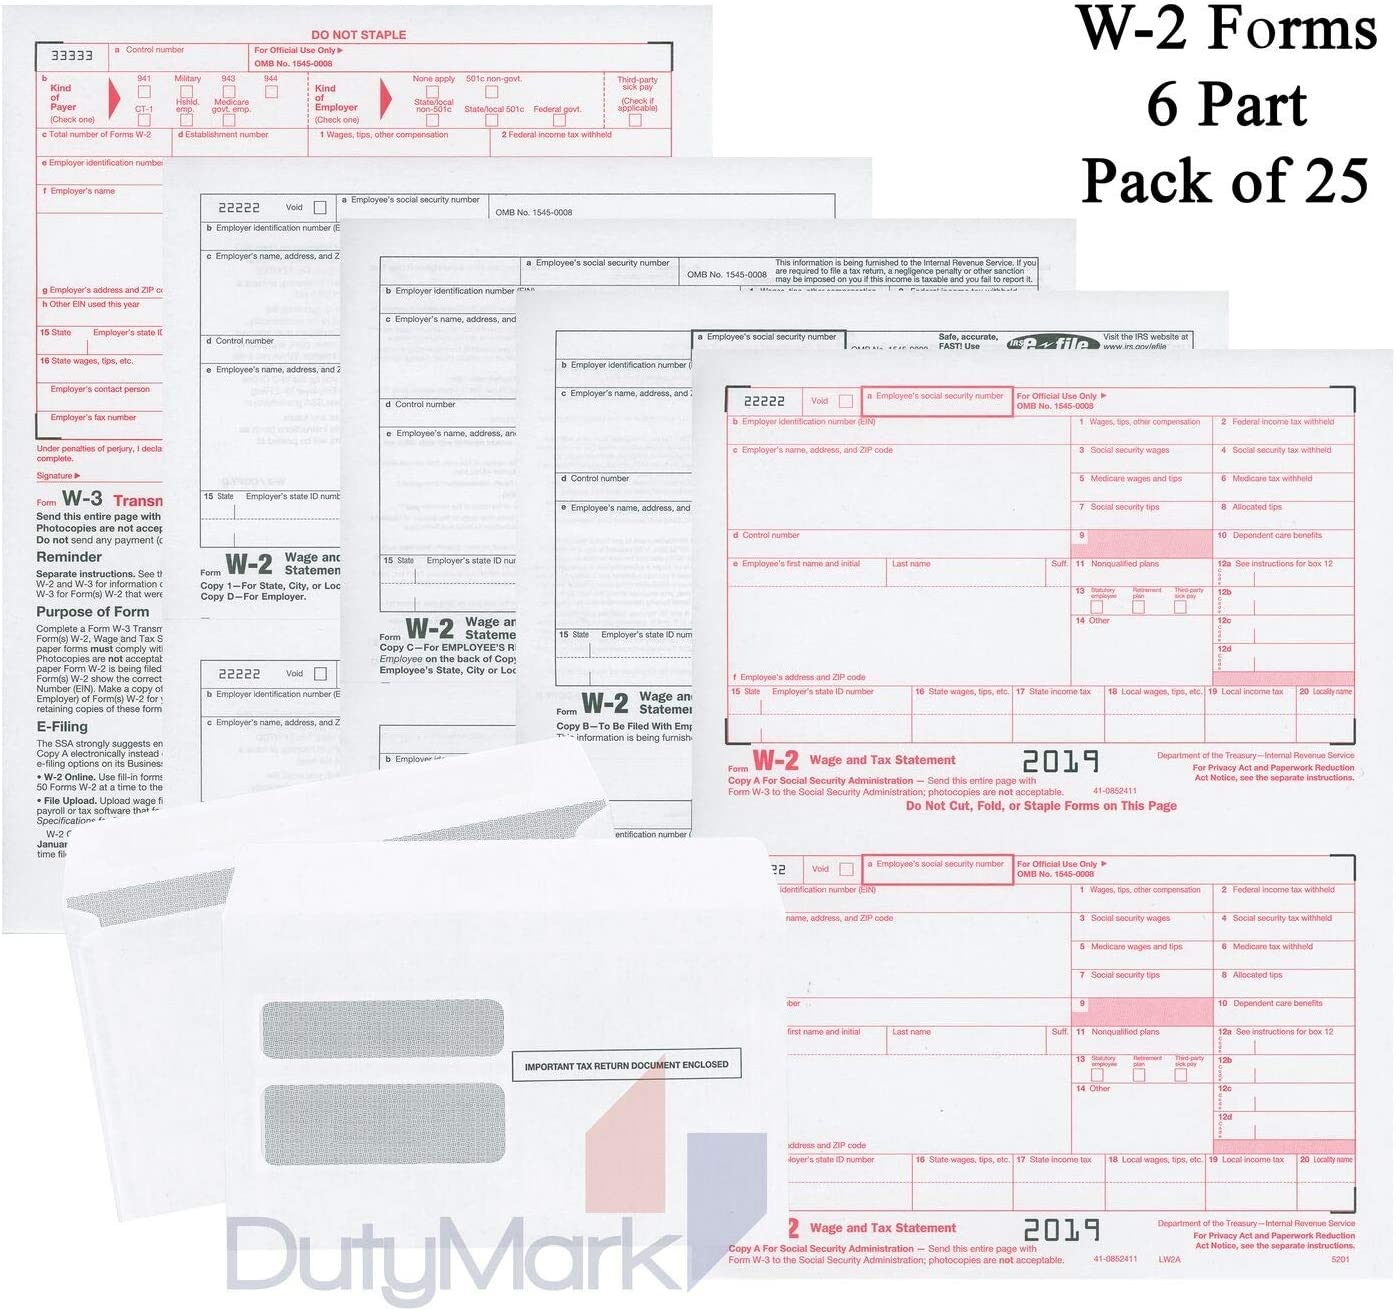 (2019) W-2 Tax Forms (6-Part) Kit für 25 Employees mit Self-Seal Envelopes und W-3 Transmittal für Quickbooks und Accounting Software, 2019 W2